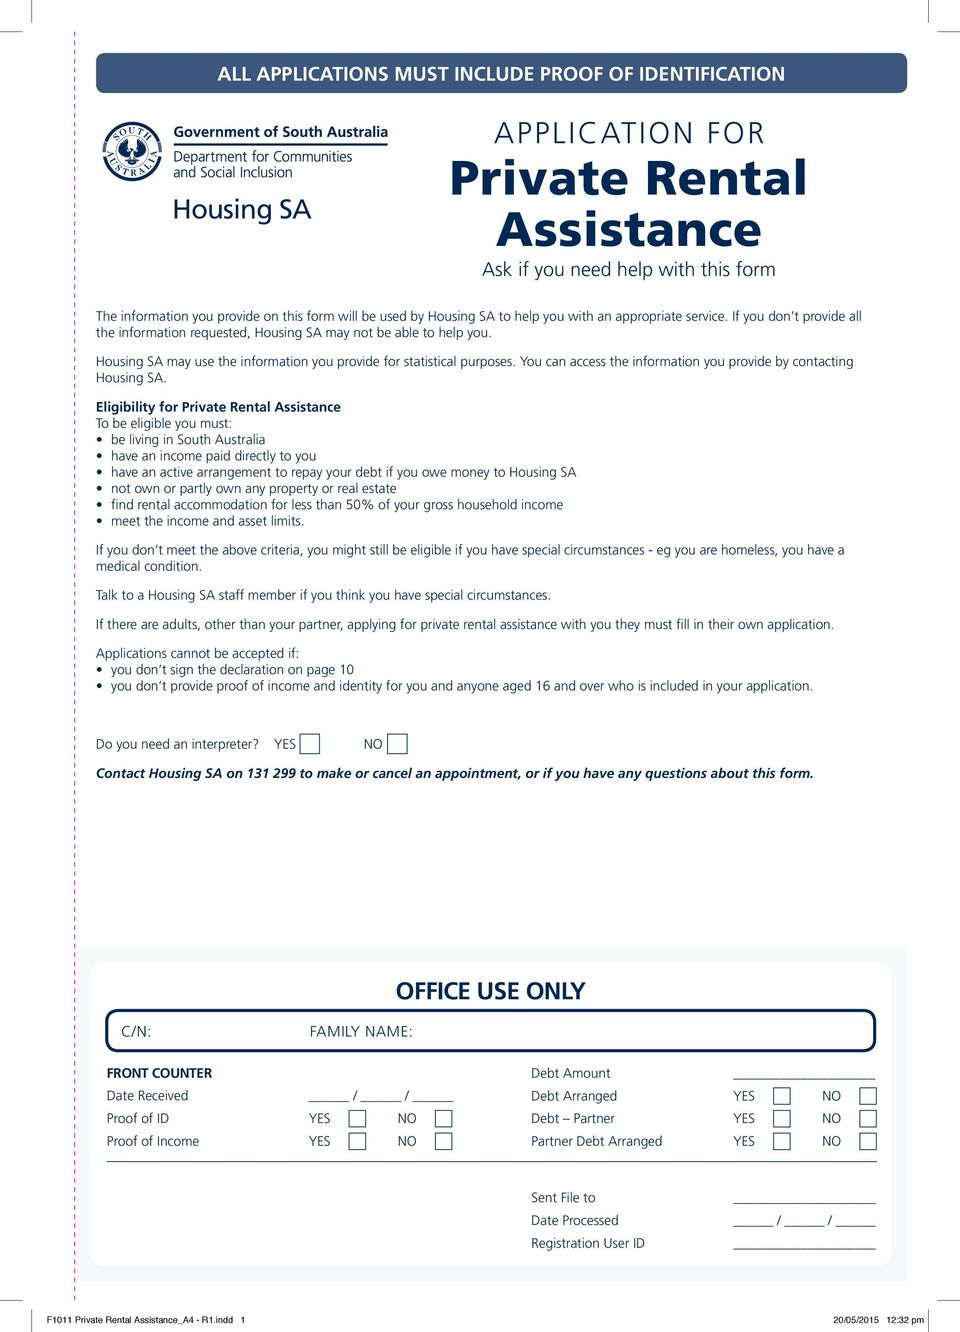 Housing SA may use the information you provide for statistical purposes. You can access the information you provide by contacting Housing SA.